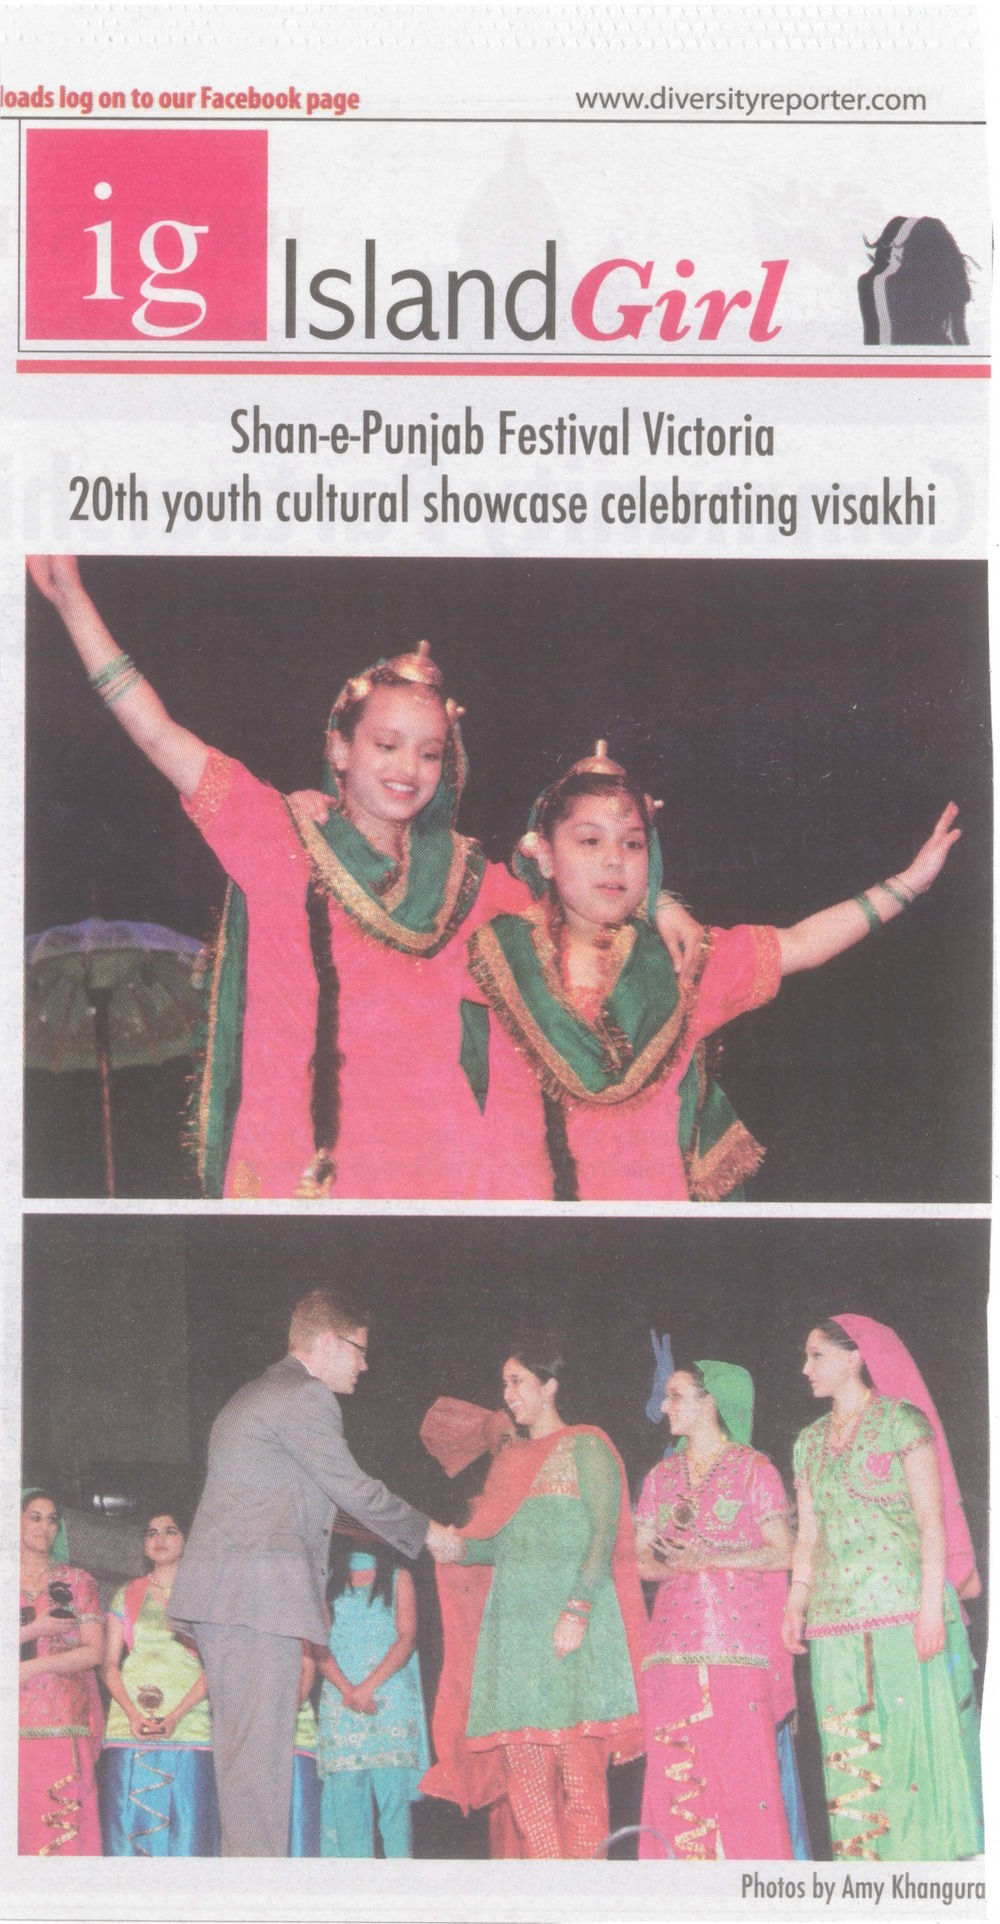 2011_Shan-e-Punjab Festival Victoria 20th youth cultural showcase celebrating visakhi.jpg